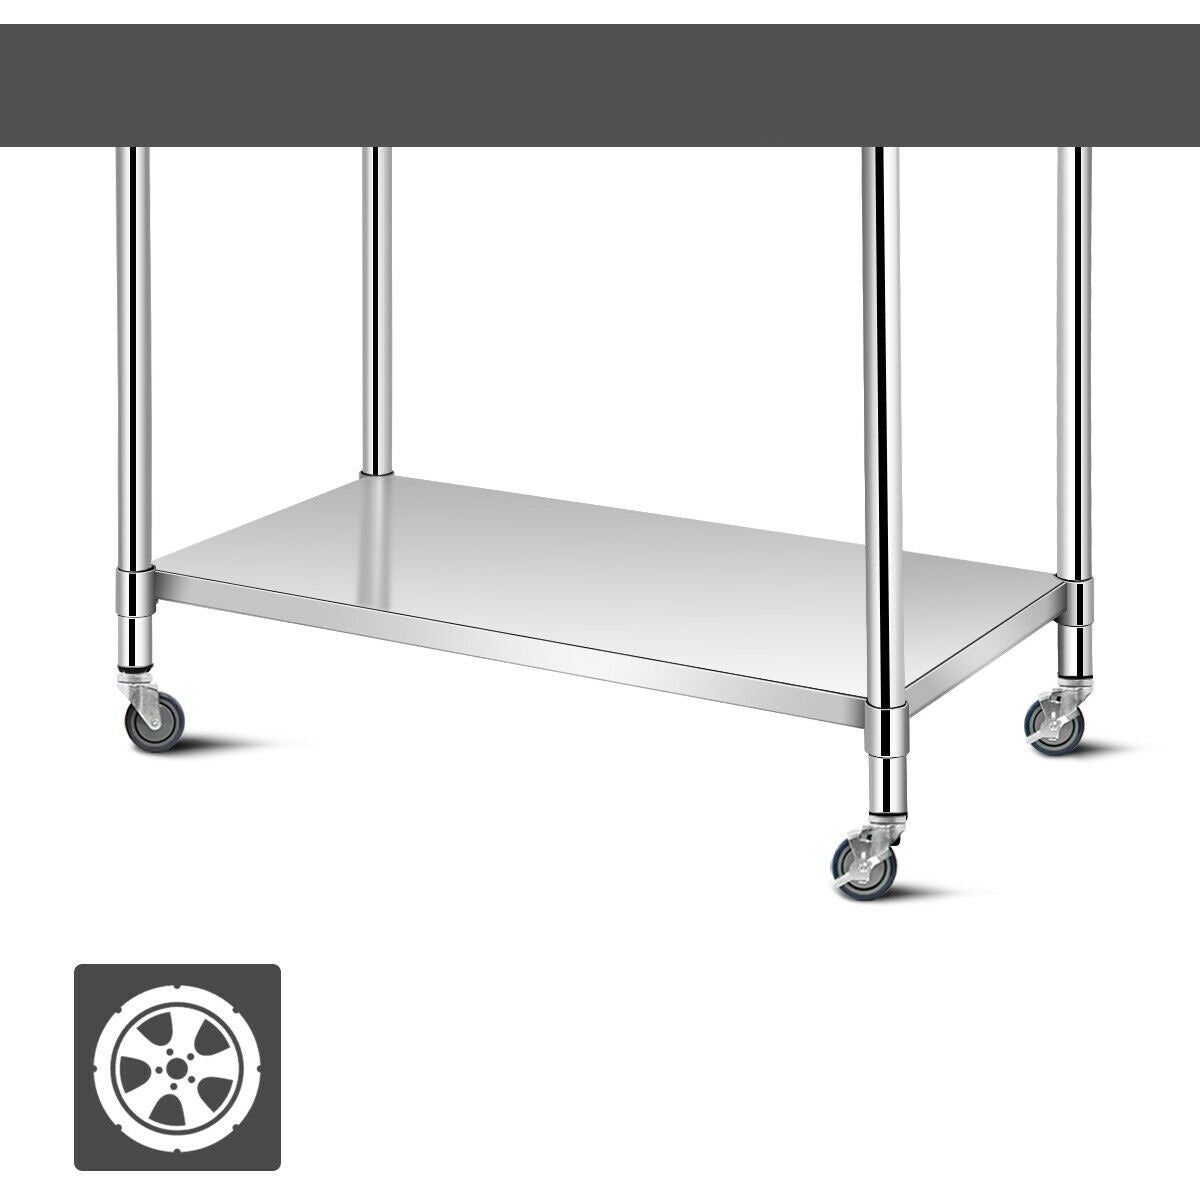 Premium Kitchen Prep Rolling Work Table Stainless Steel 30x48in - Morealis